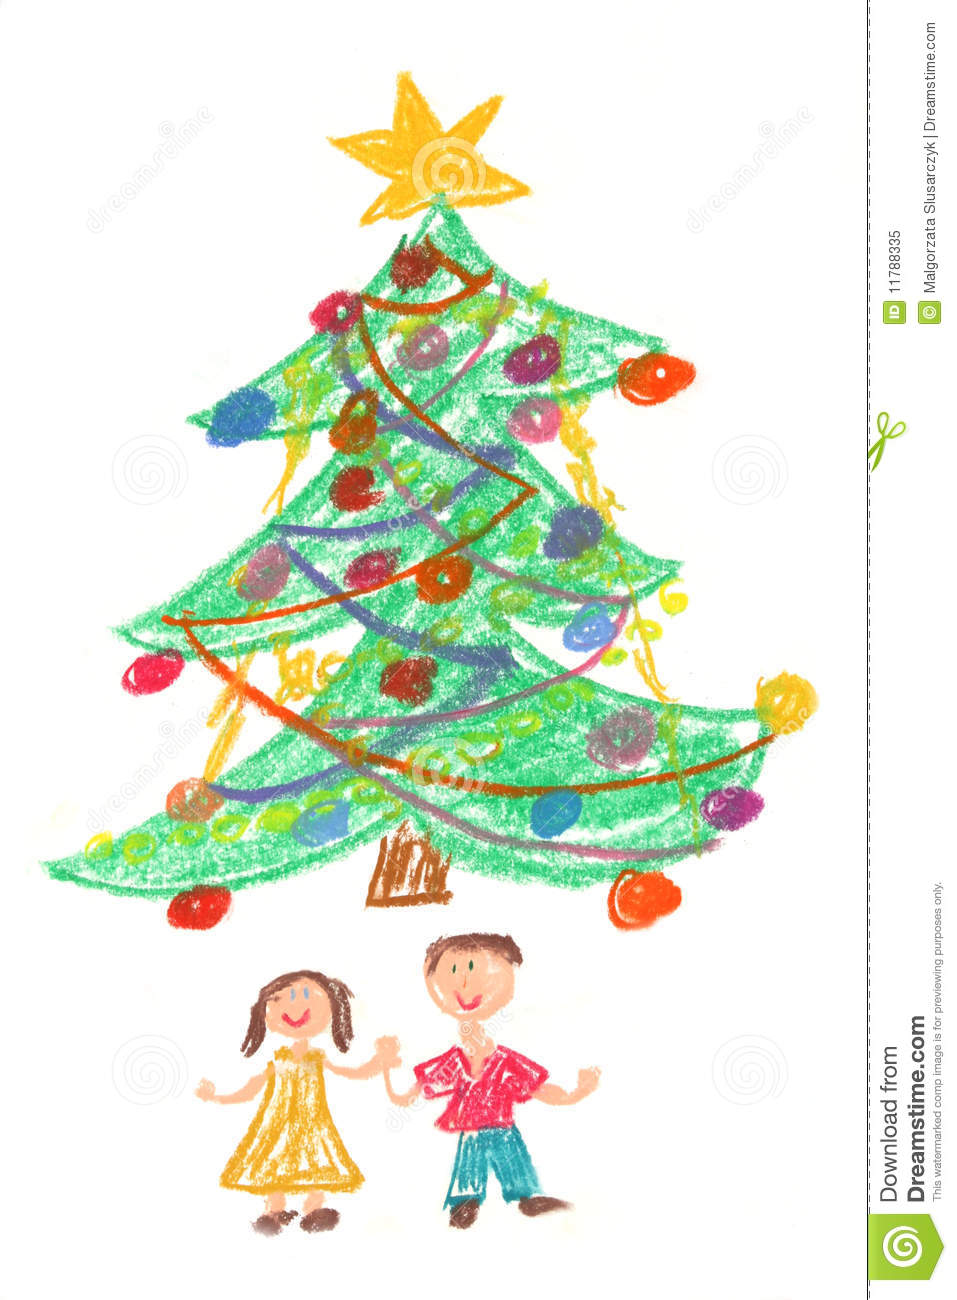 Children And Christmas Tree Drawing Stock Illustration Illustration Of Beautiful Green 11788335